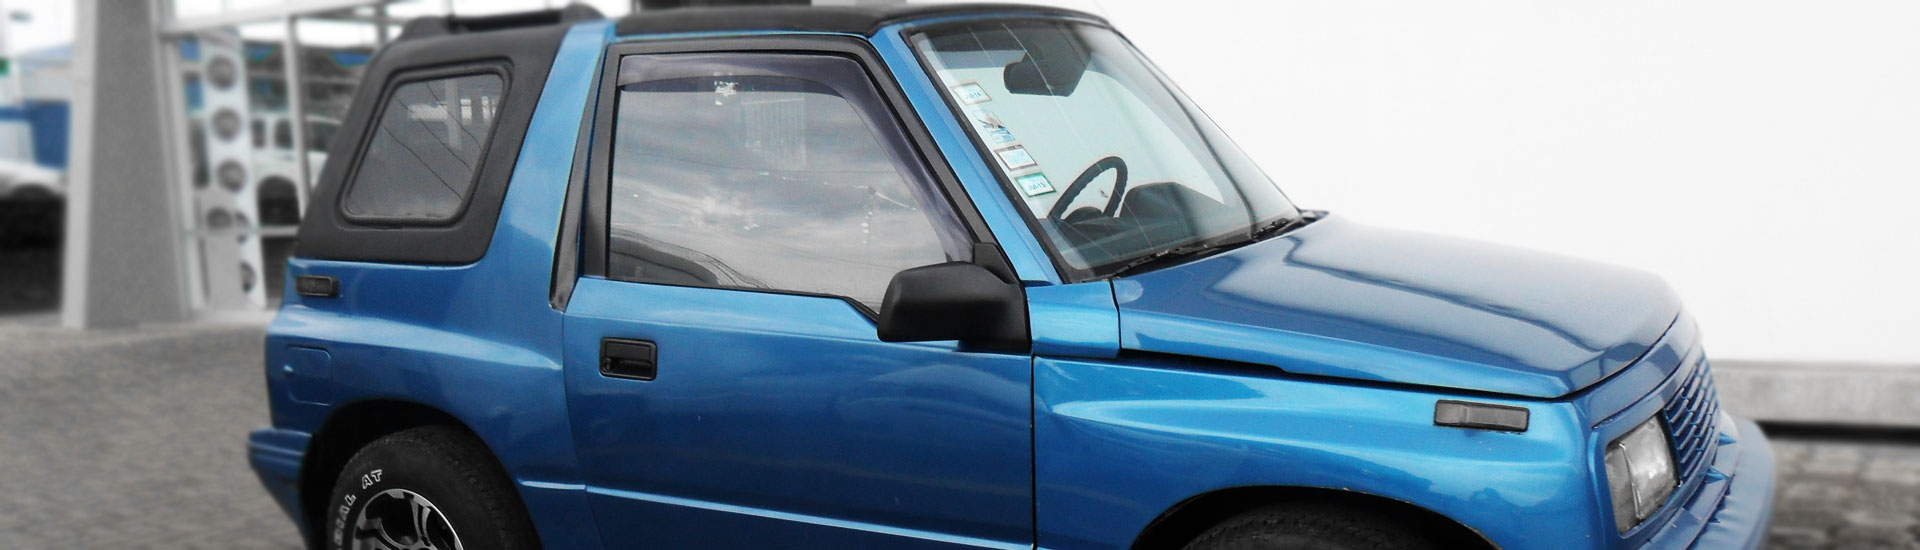 1993 Geo Tracker Window Tint